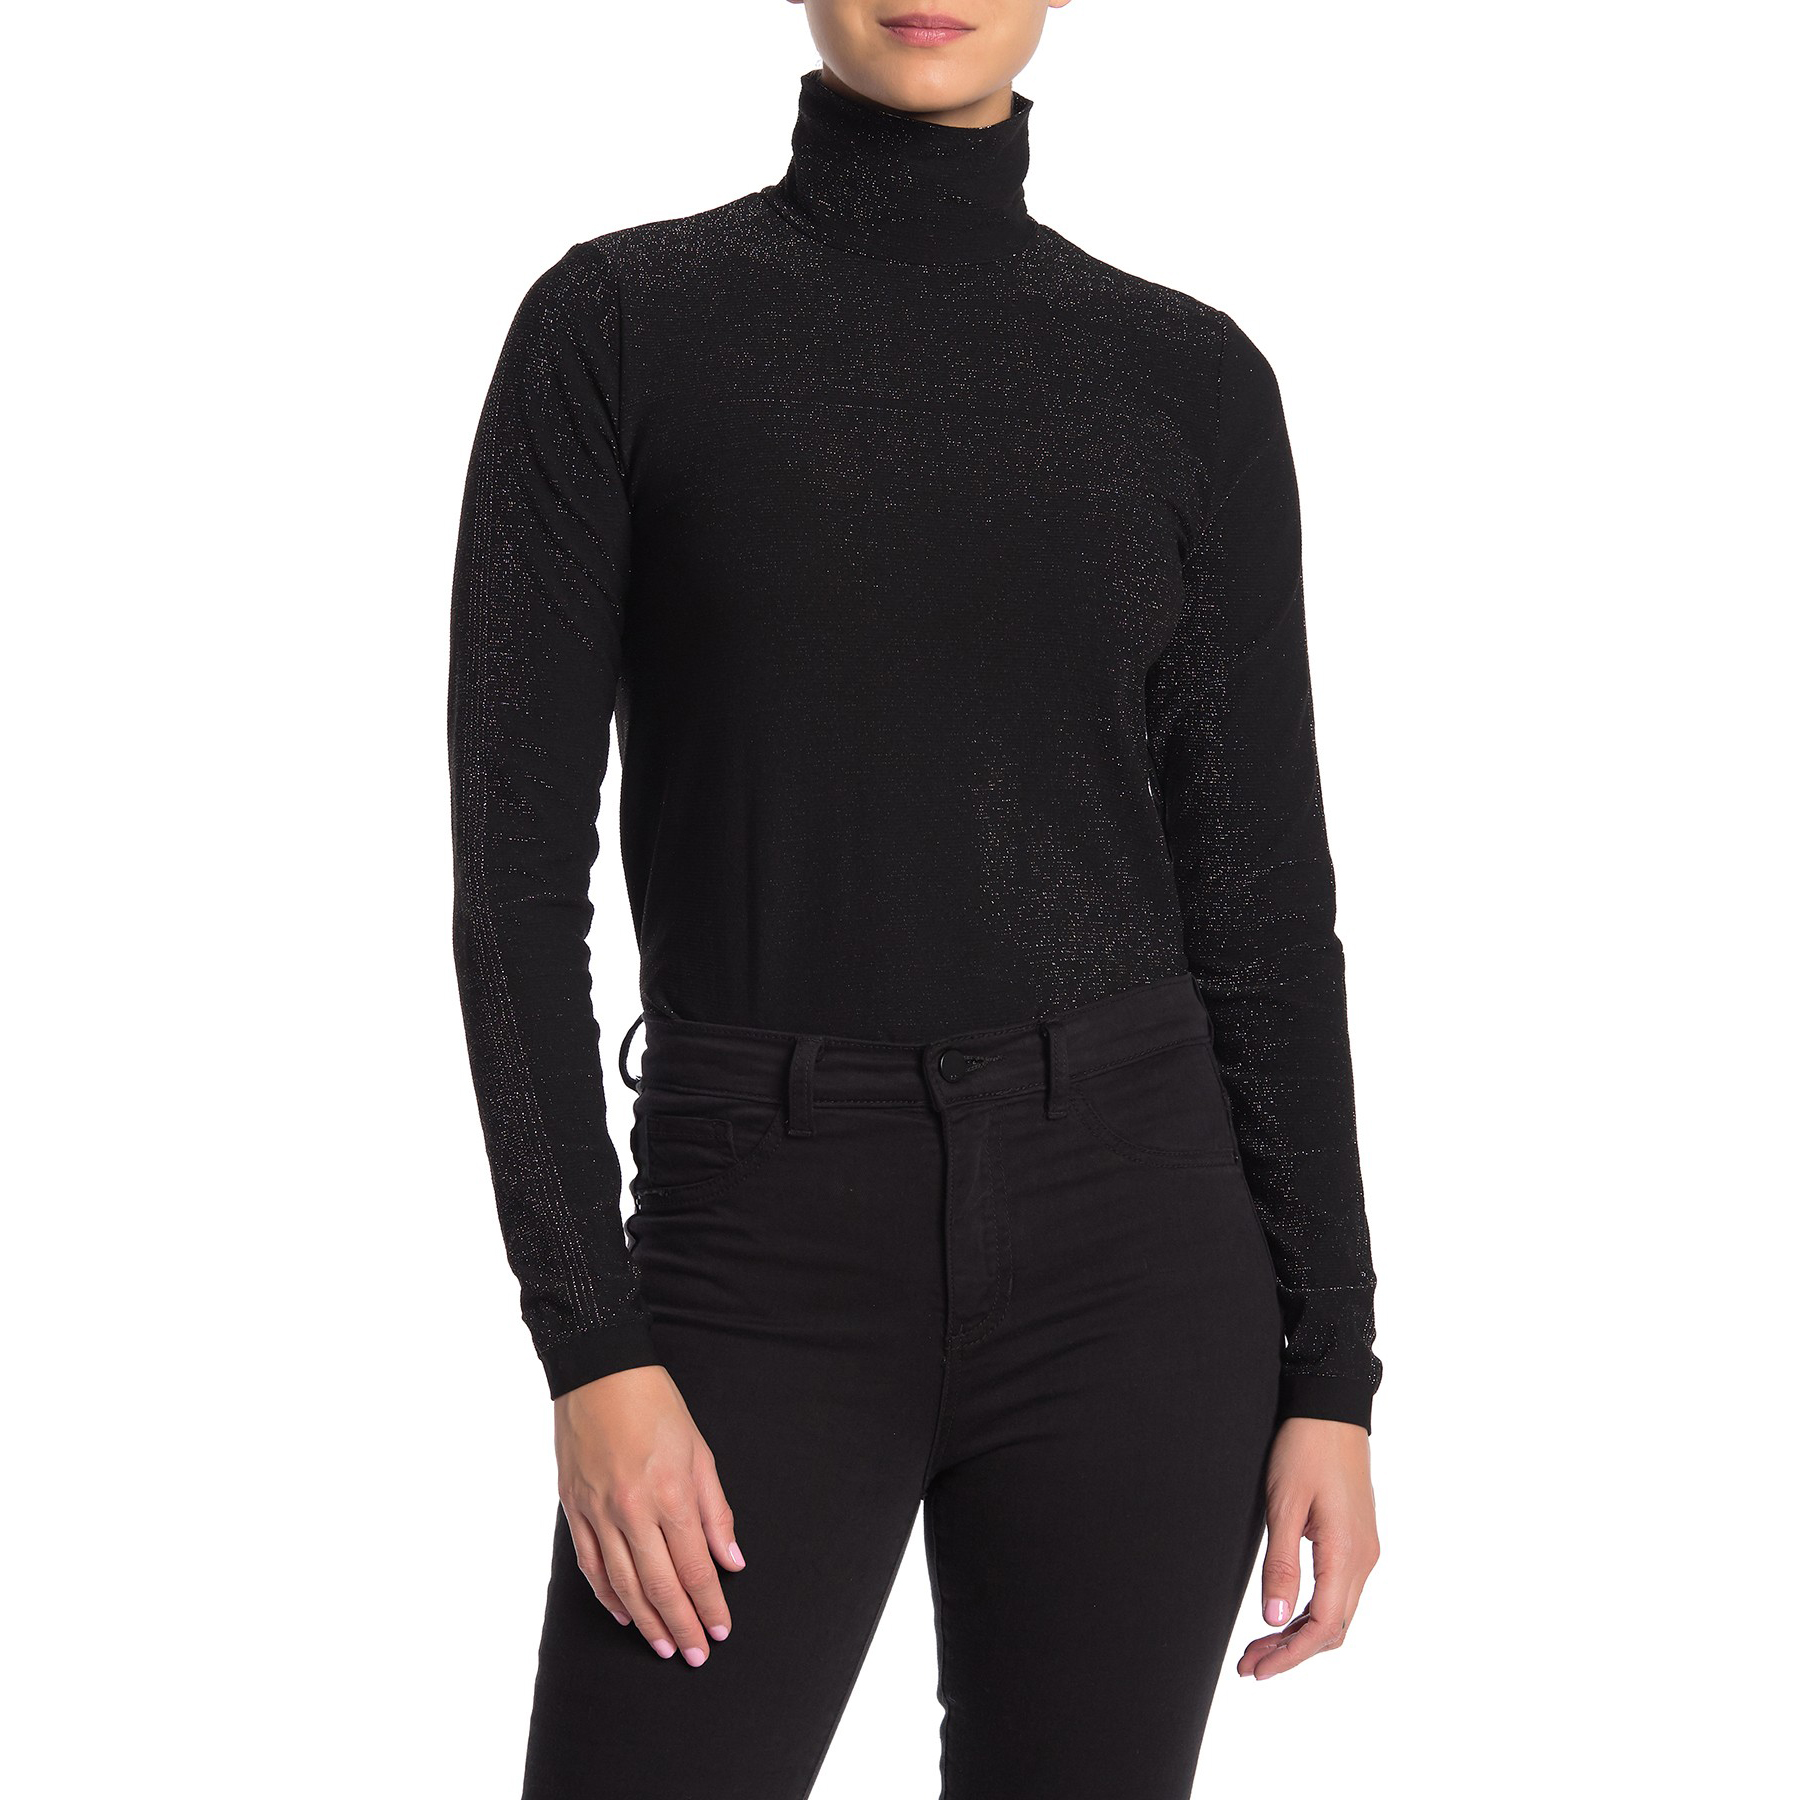 Wolford Metallic Knit Turtleneck Bodysuit